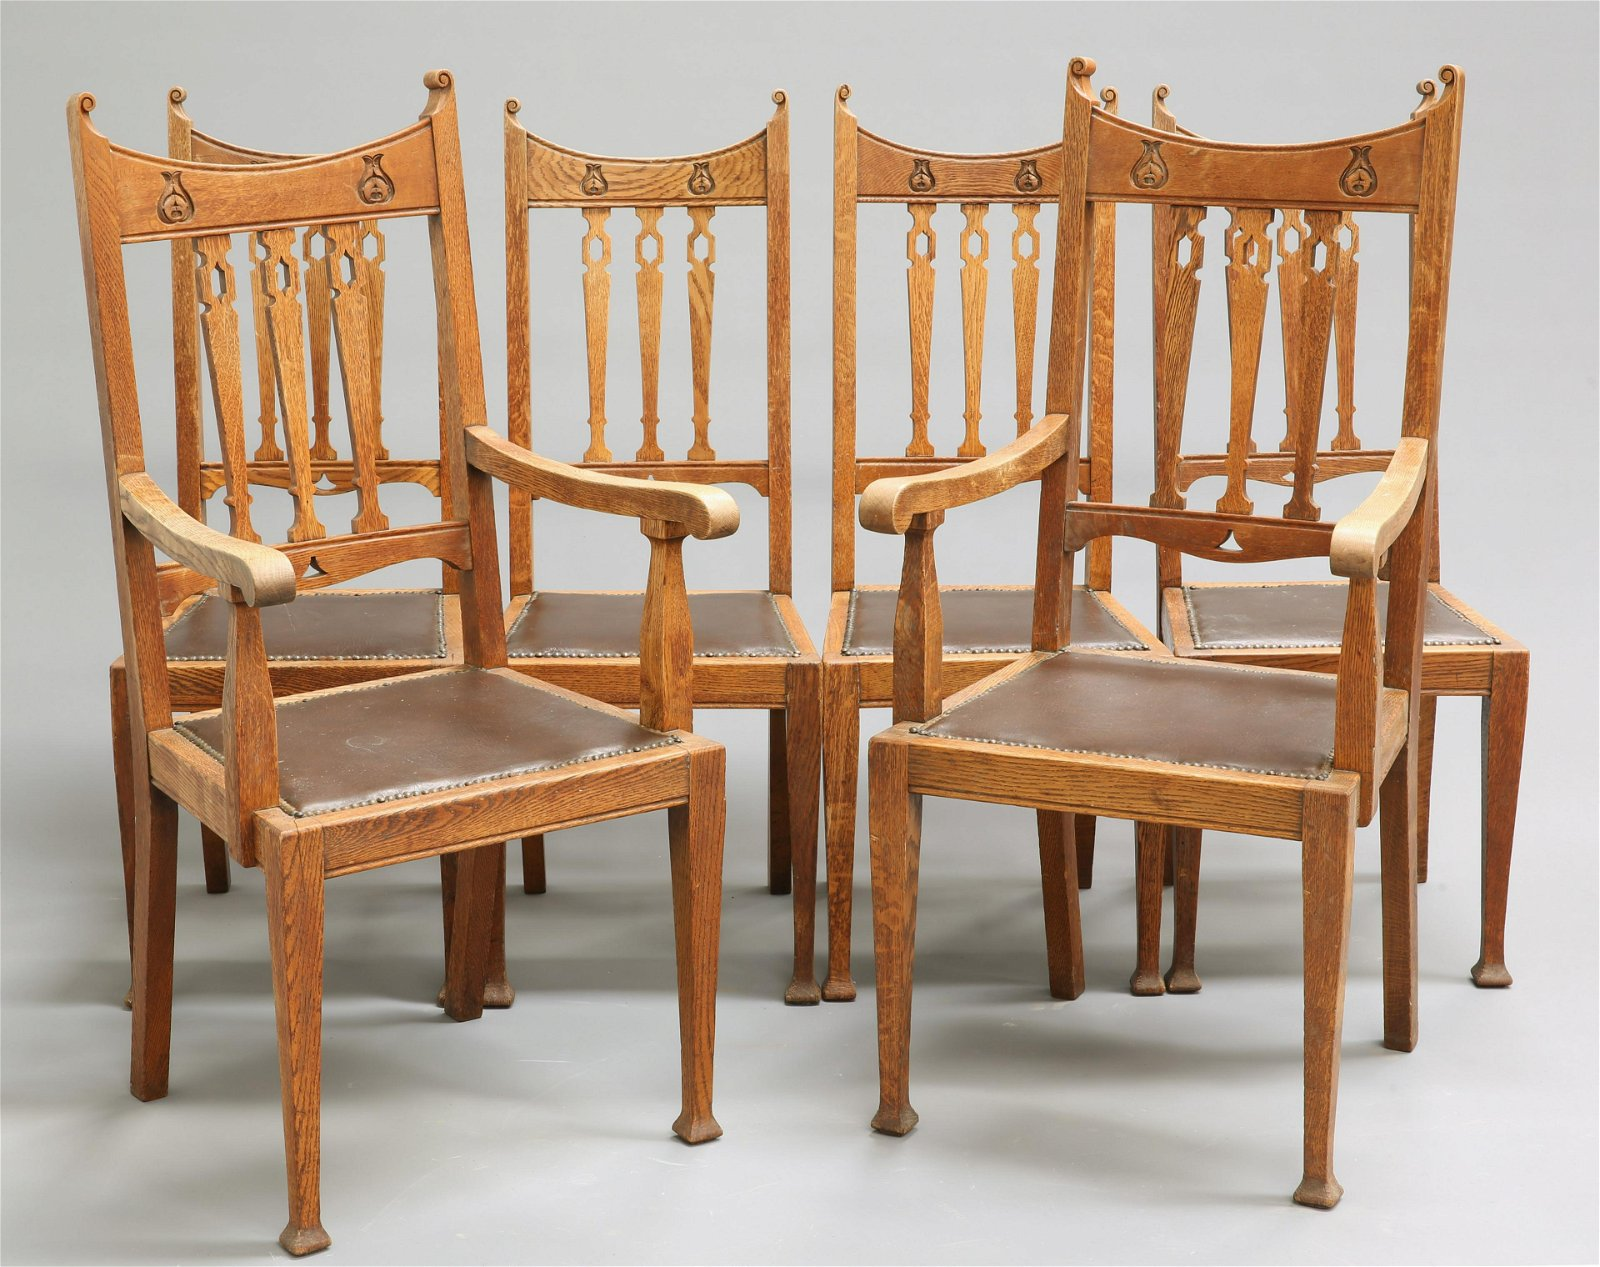 A SET OF SIX ARTS AND CRAFTS OAK DINING CHAIRS,